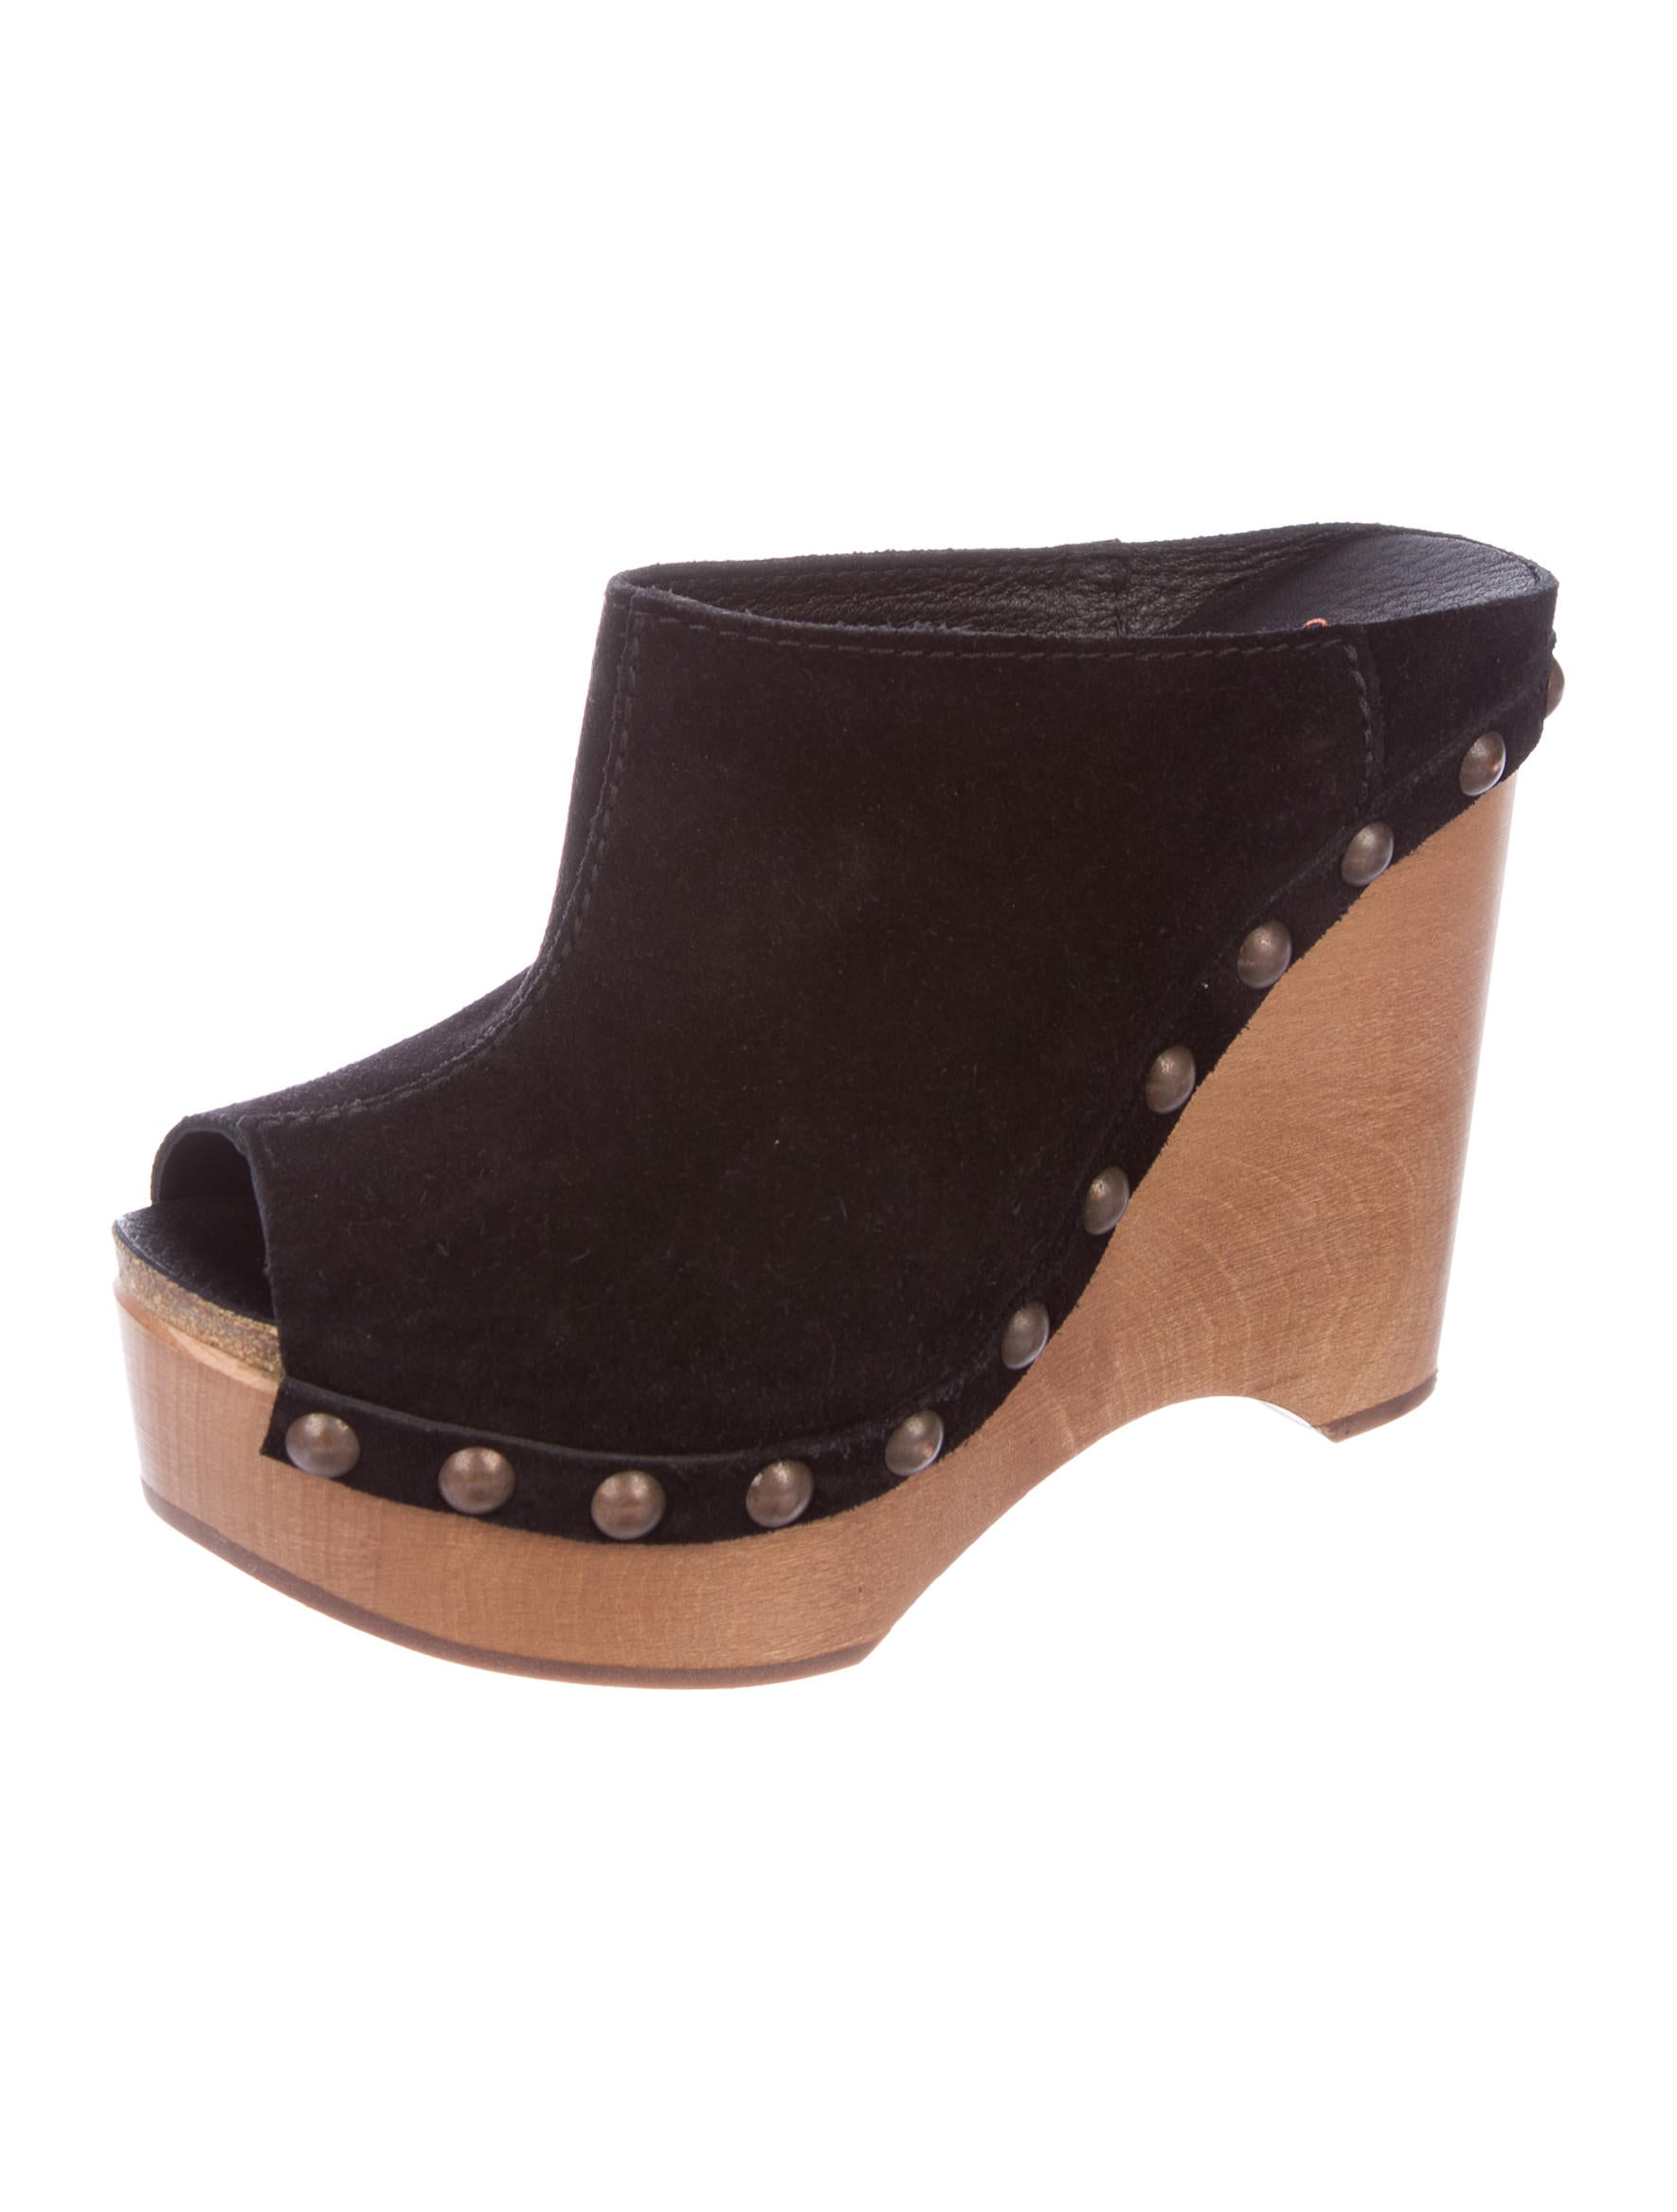 Pedro Garcia April Wedge Sandals w/ Tags sast for sale clearance clearance discount finishline Hi5bgRC